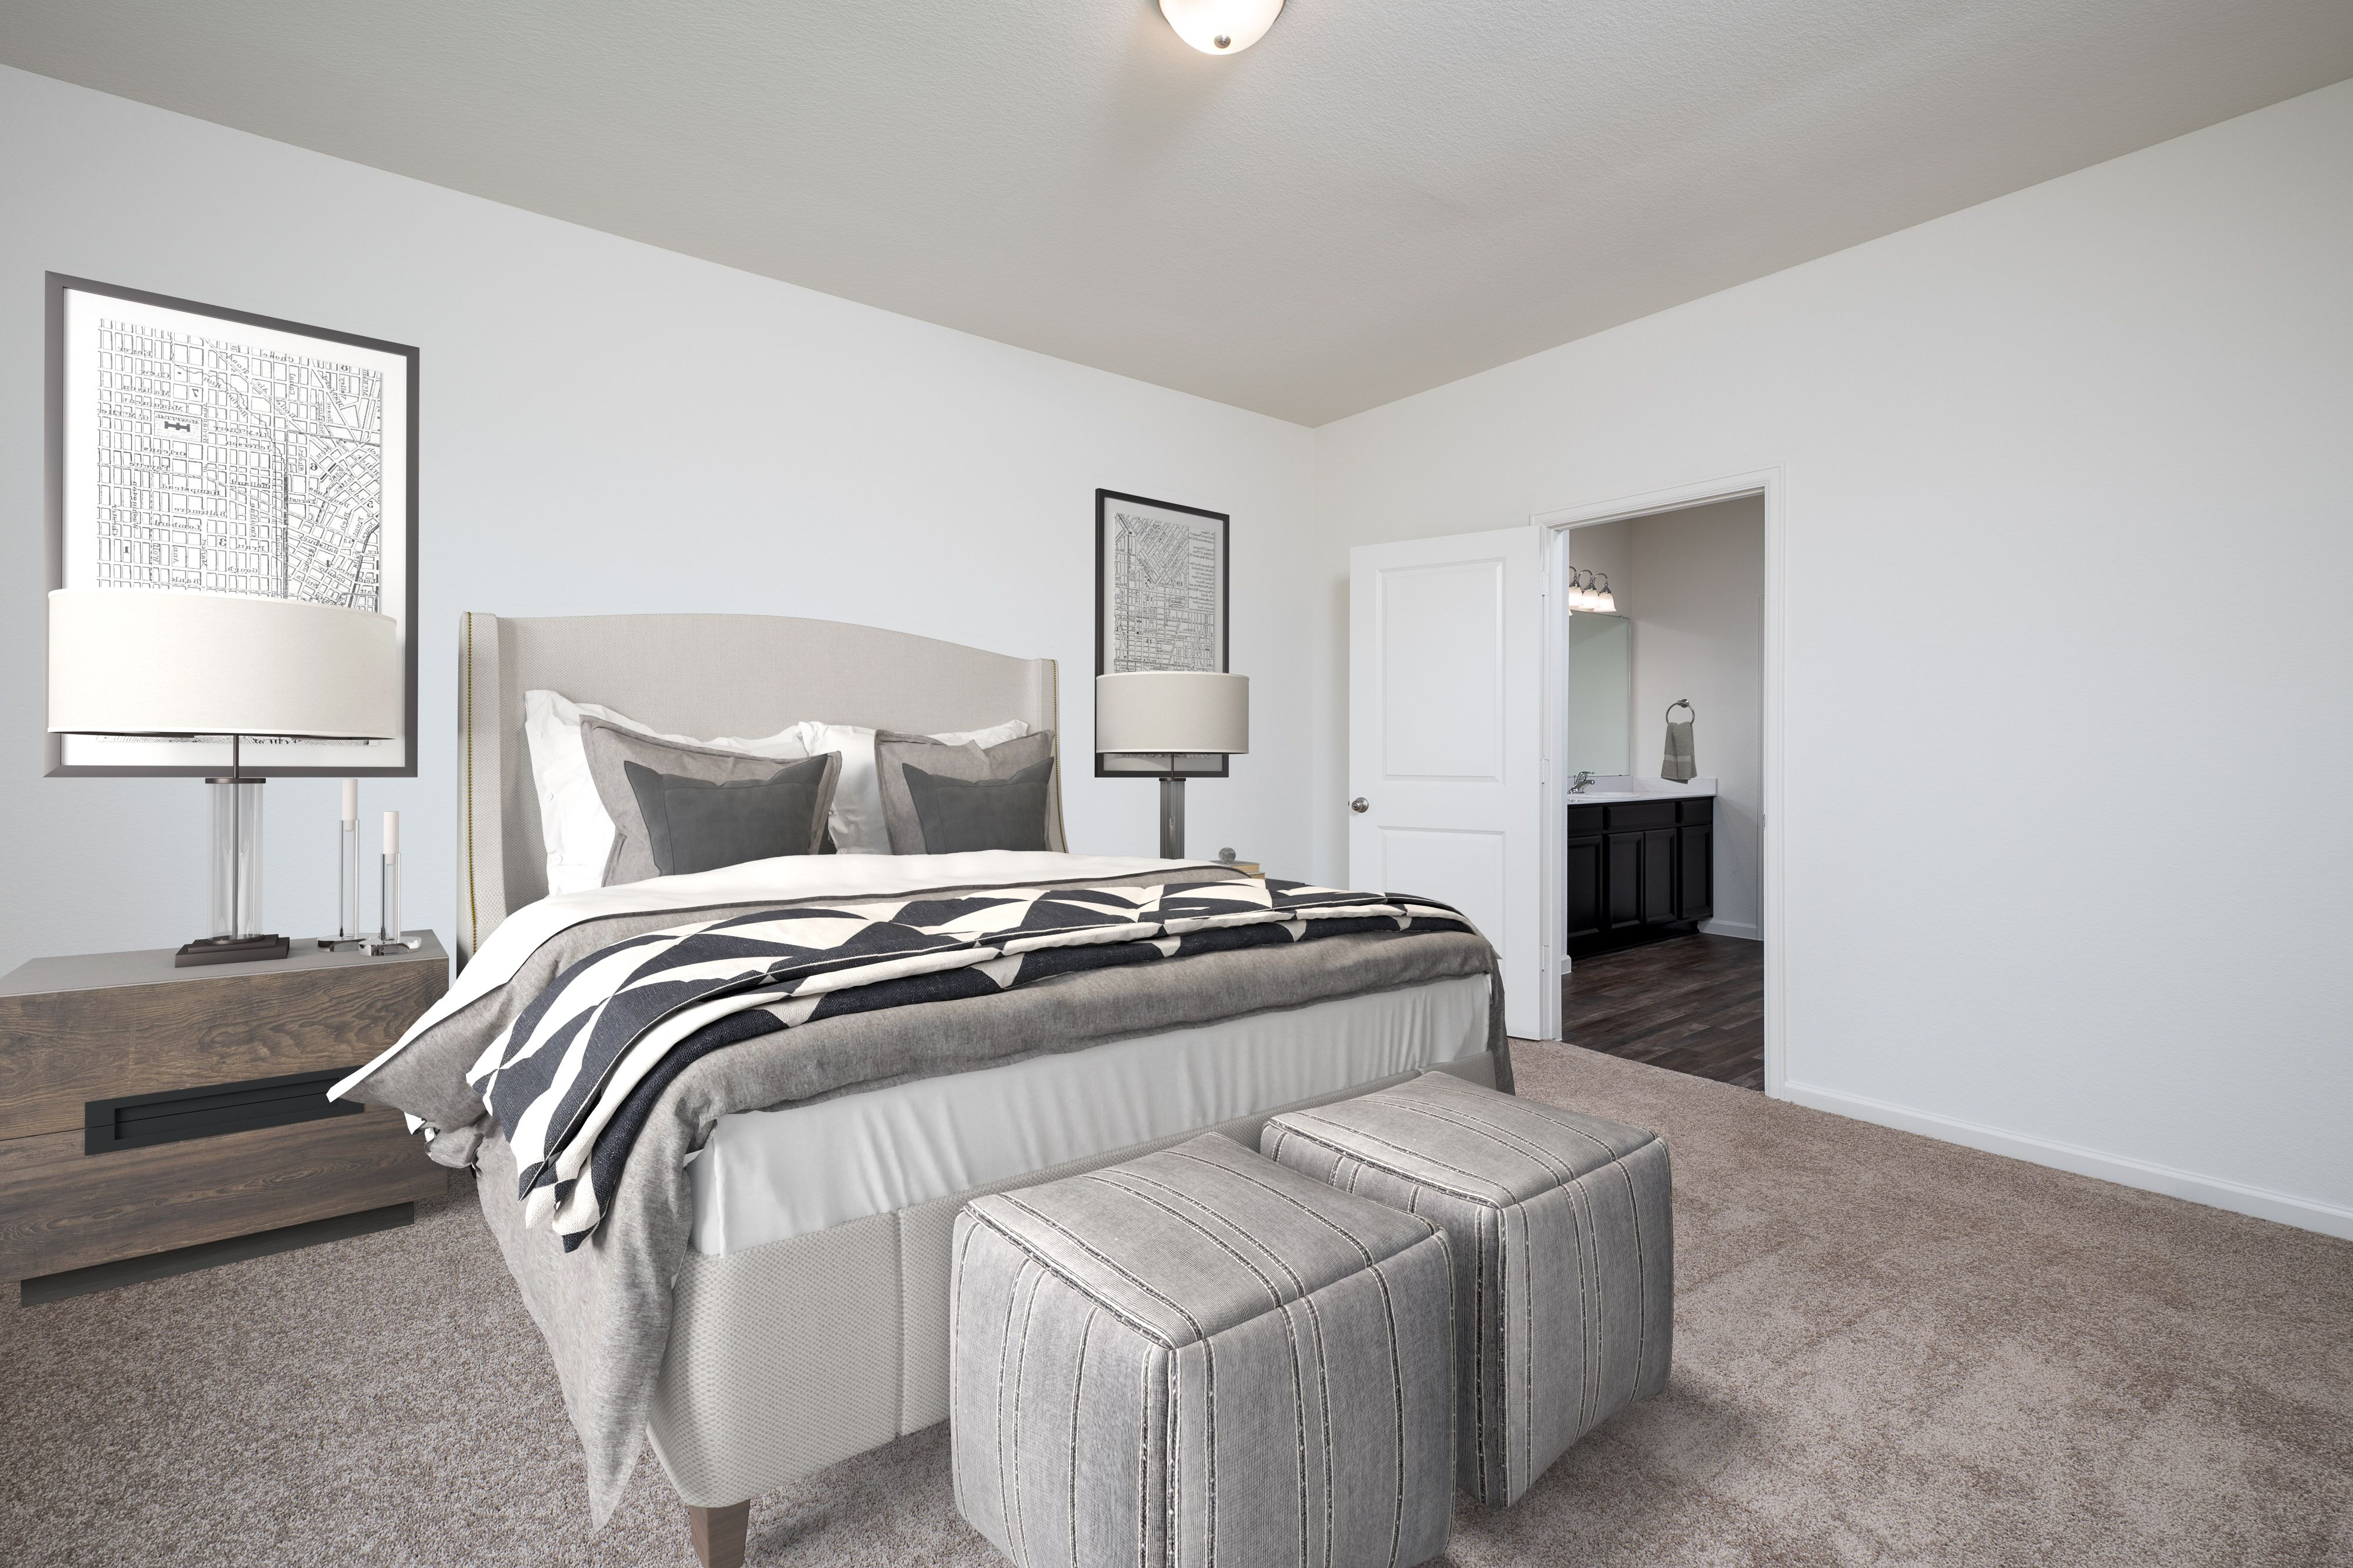 Bedroom featured in the Luna By Starlight Homes in Fort Worth, TX